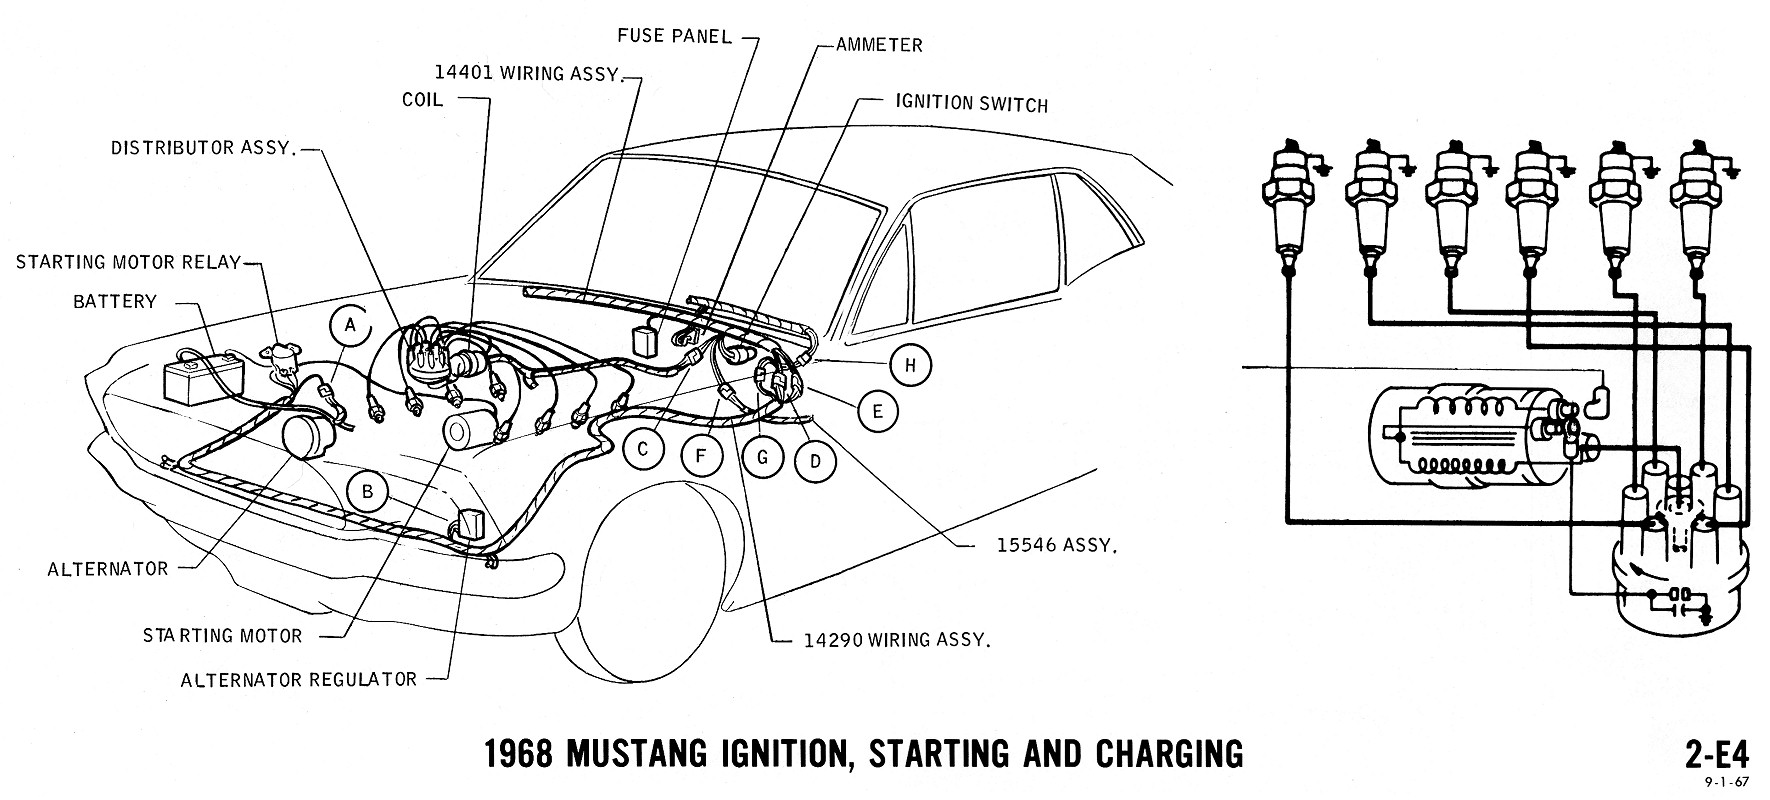 1968 Mustang Wiring Diagrams And Vacuum Schematics Average Joe Diagram As Well Window Air Conditioner On Stop Start Ignition Starting Charging 2